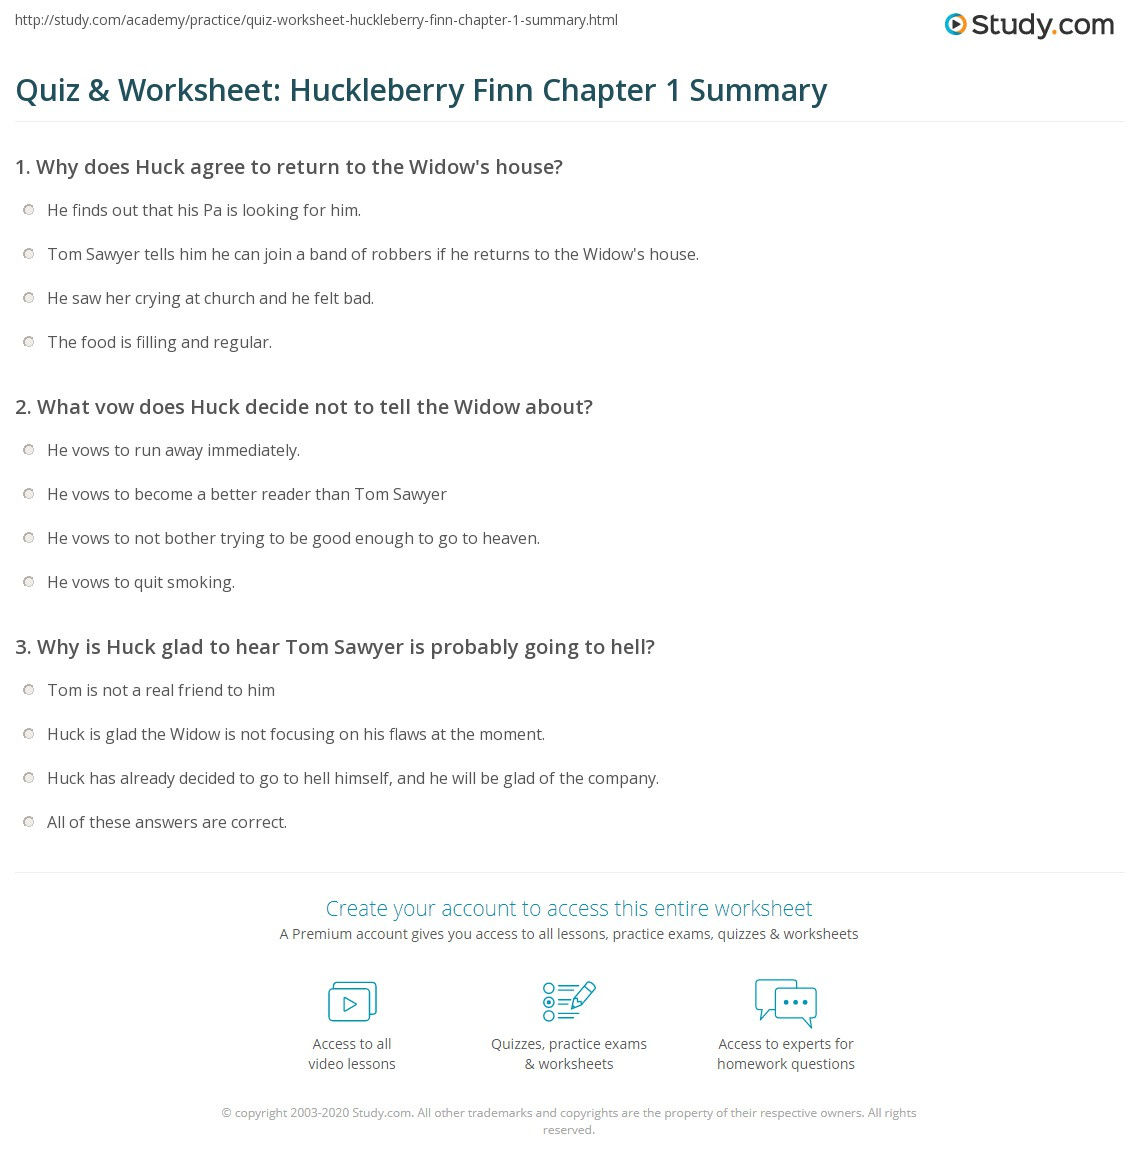 quiz worksheet huckleberry finn chapter 1 summary study com rh study com Huckleberry Finn and His Friends adventures of huckleberry finn study guide questions and answers